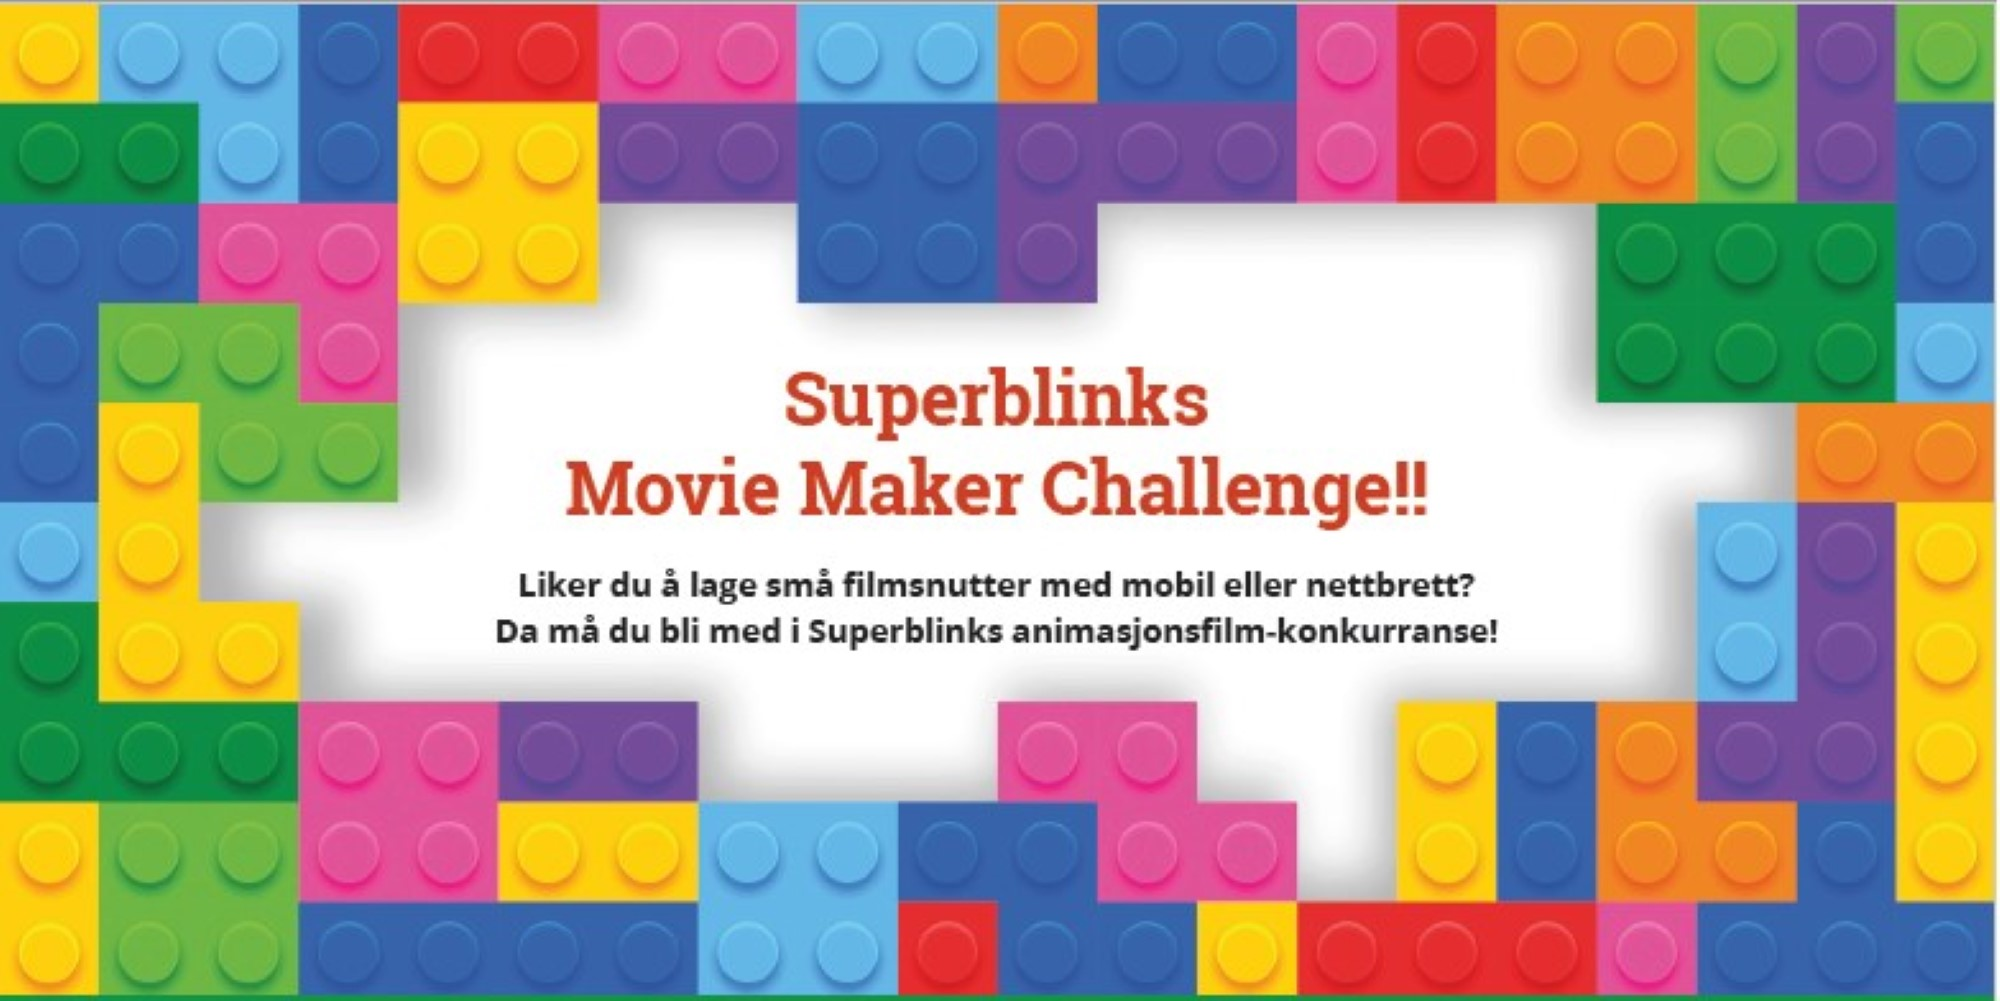 Superblnk movie maker challenge